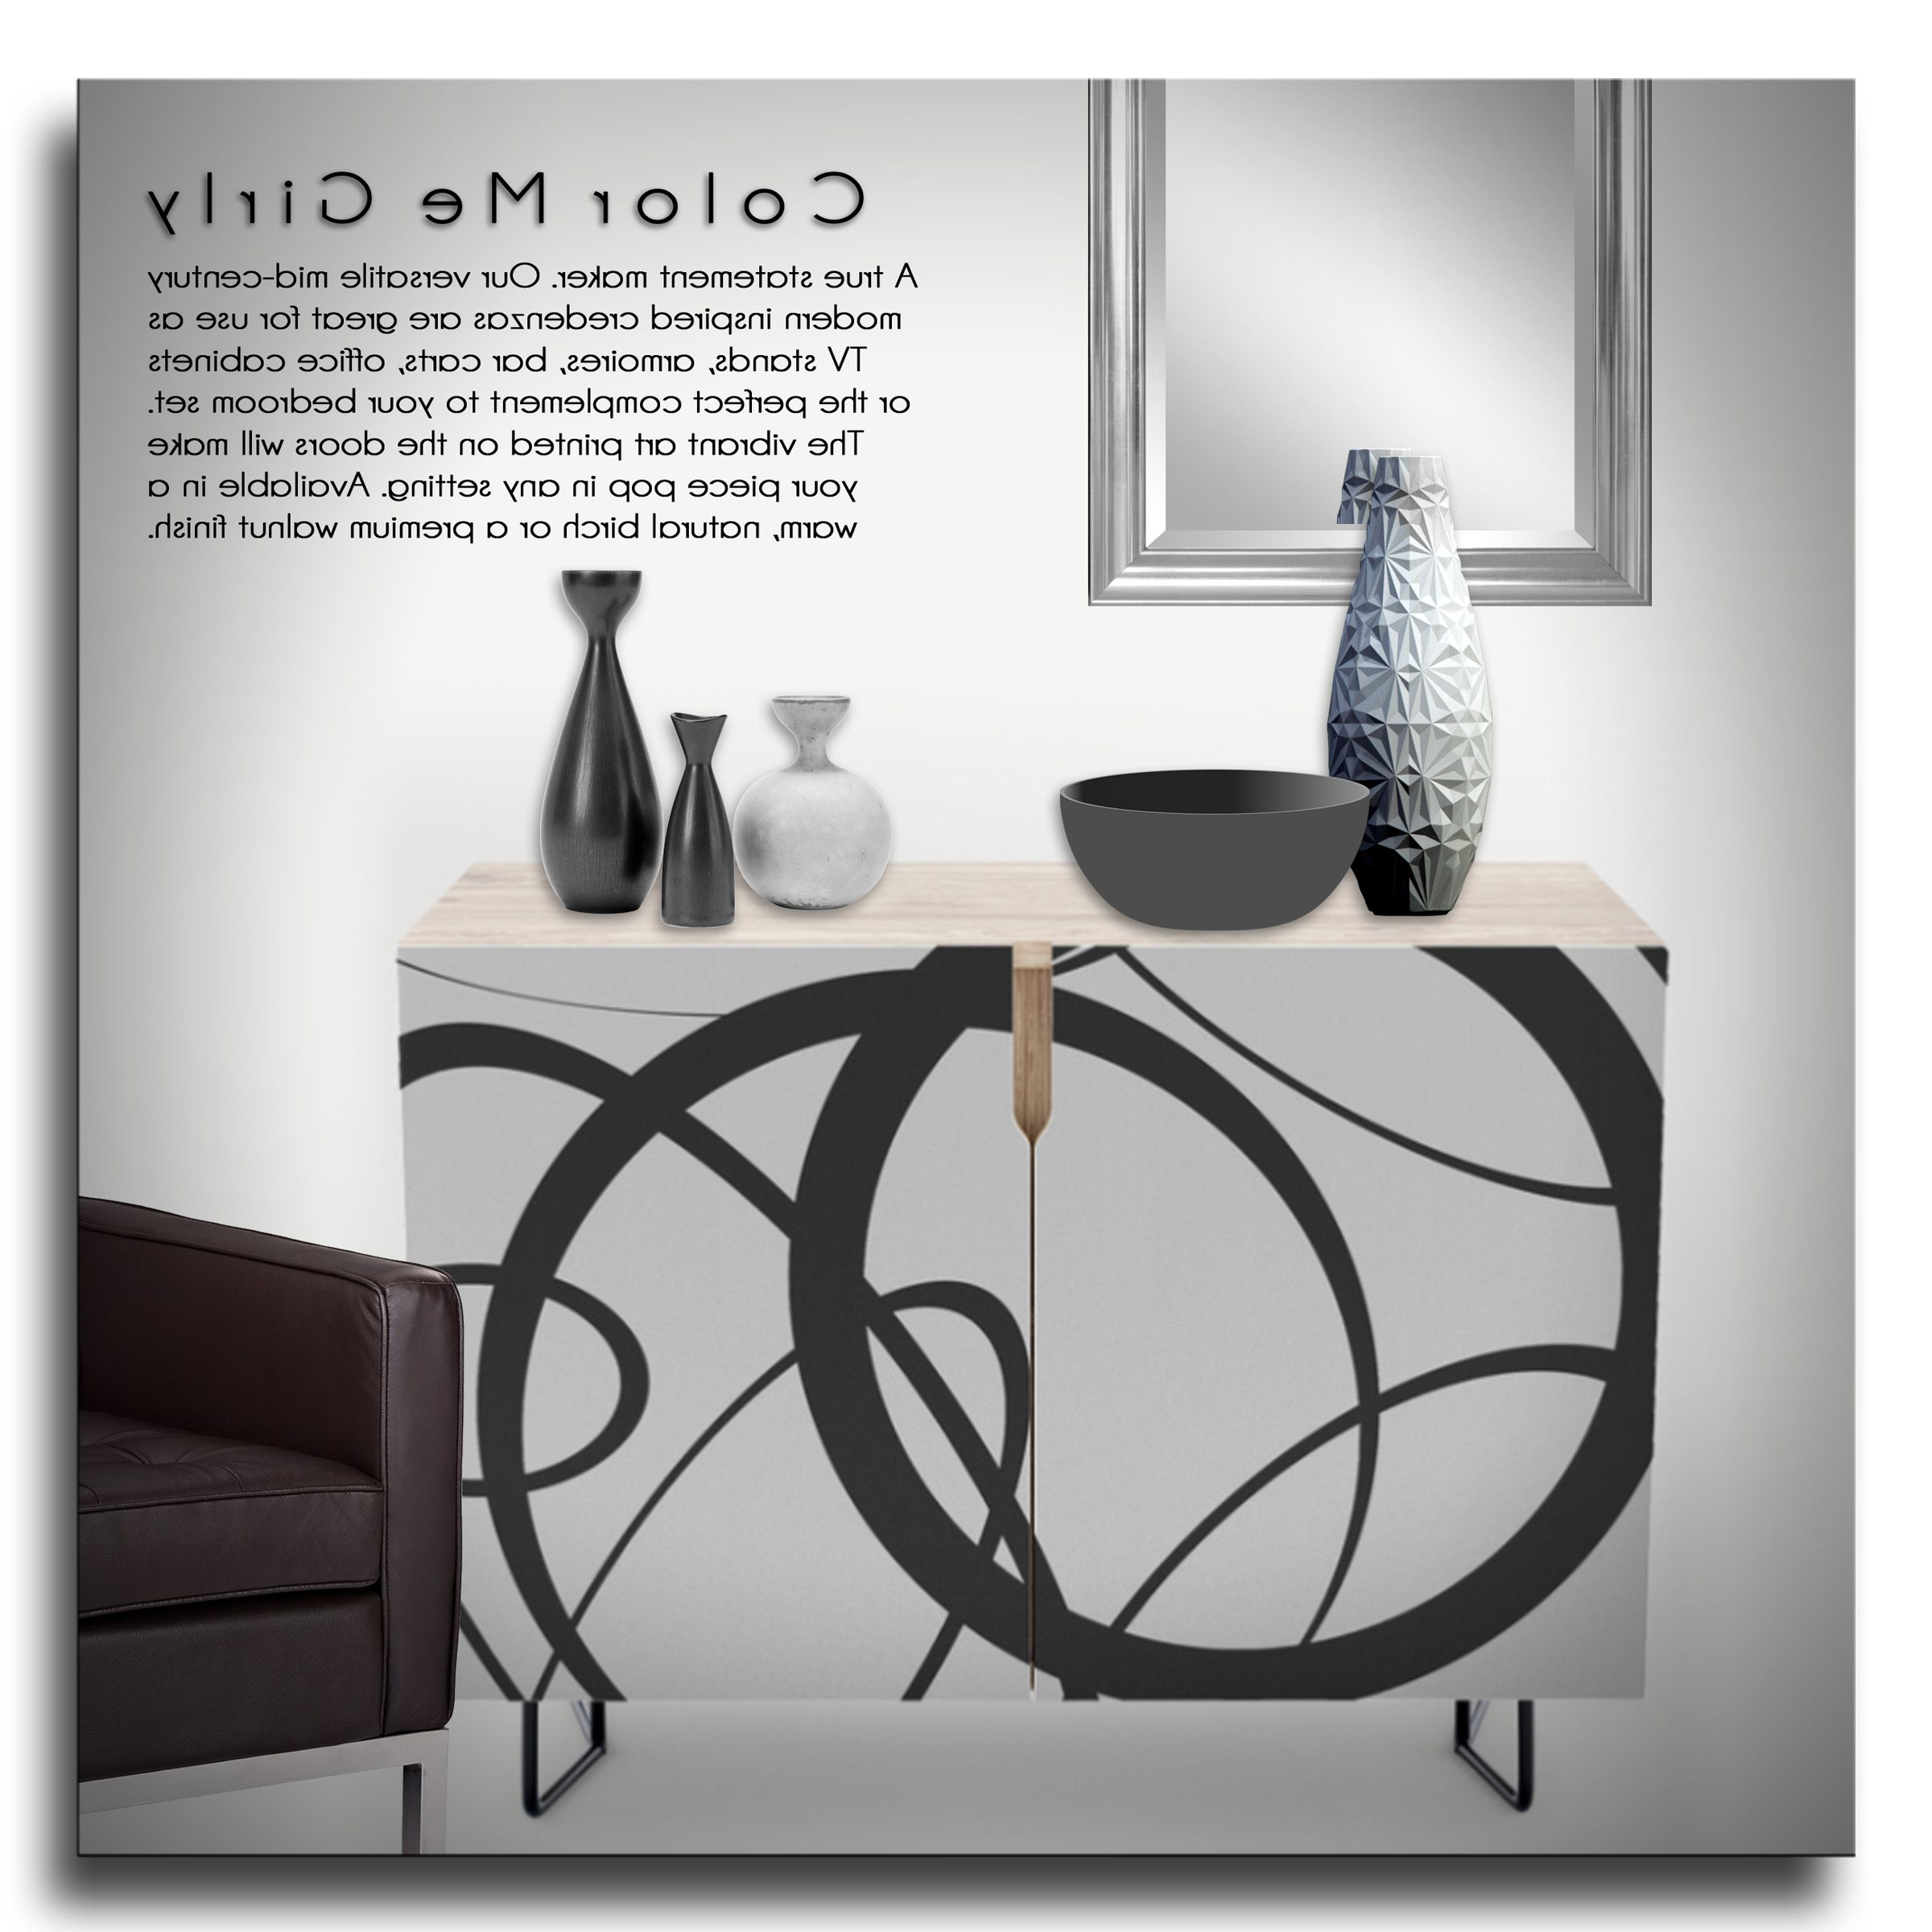 Random Abstract Shapes Credenza – Abstract, Shapes, Circle For Geometric Shapes Credenzas (View 5 of 20)